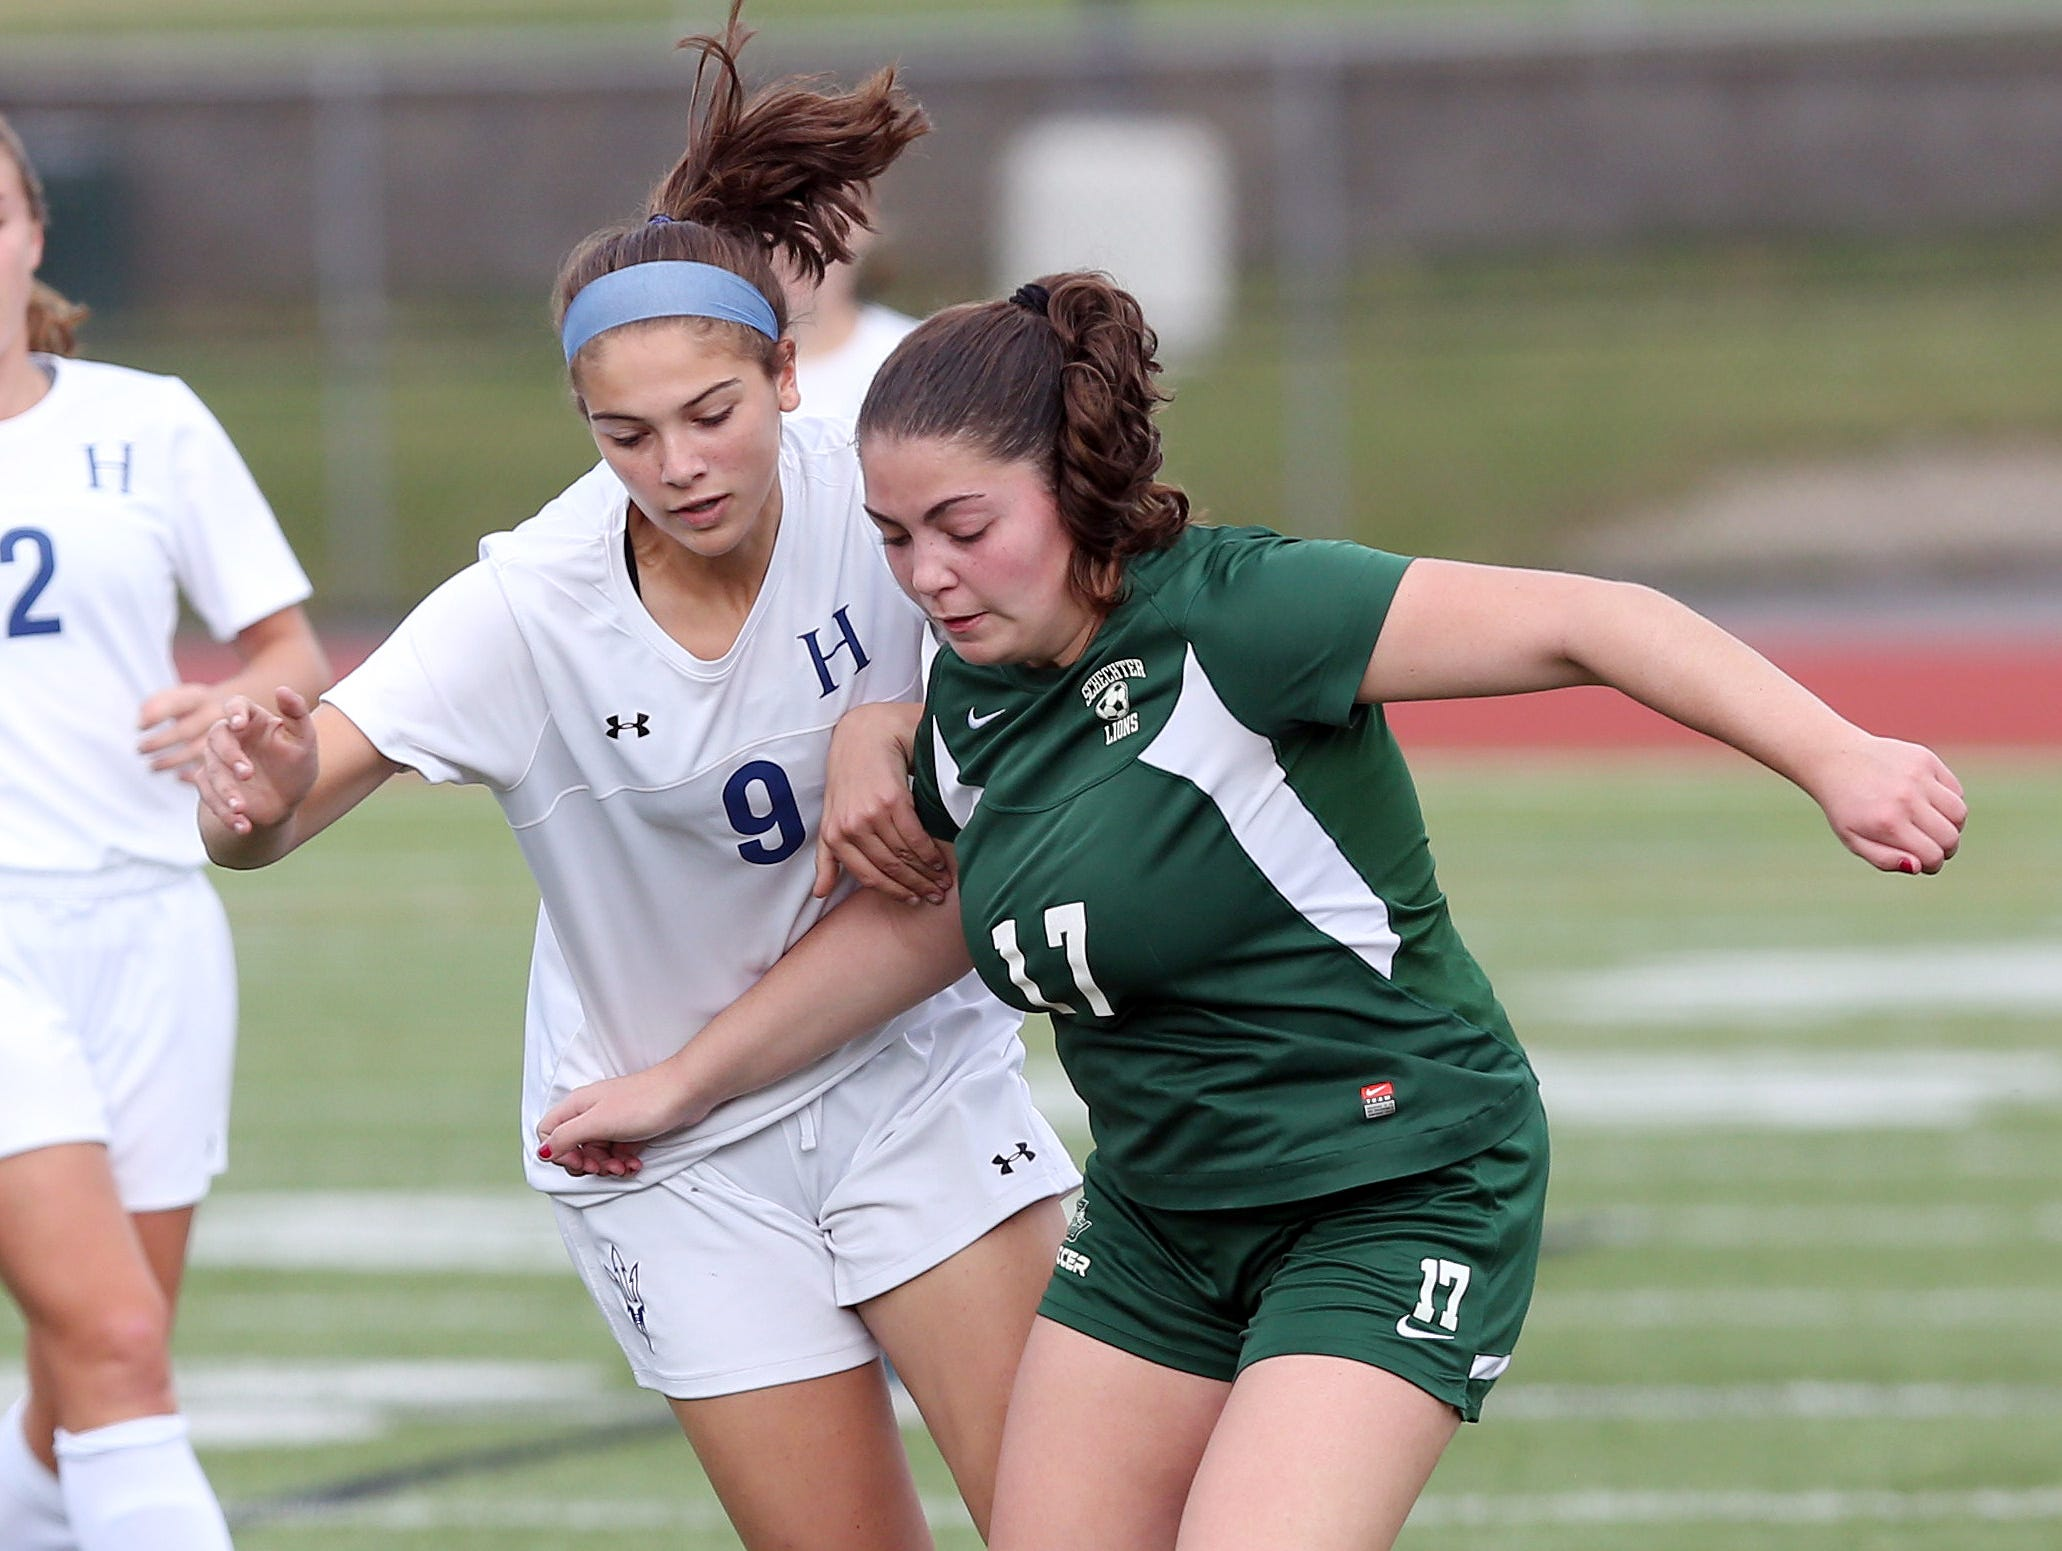 From left, Haldane's Evy Asburn (9) and Schechter's Alexa Cotel-Altman (17) battle for ball control during the girls soccer Section 1 Class C championship game at Yorktown High School Oct. 30, 2016. Haldane won the game 3-0.